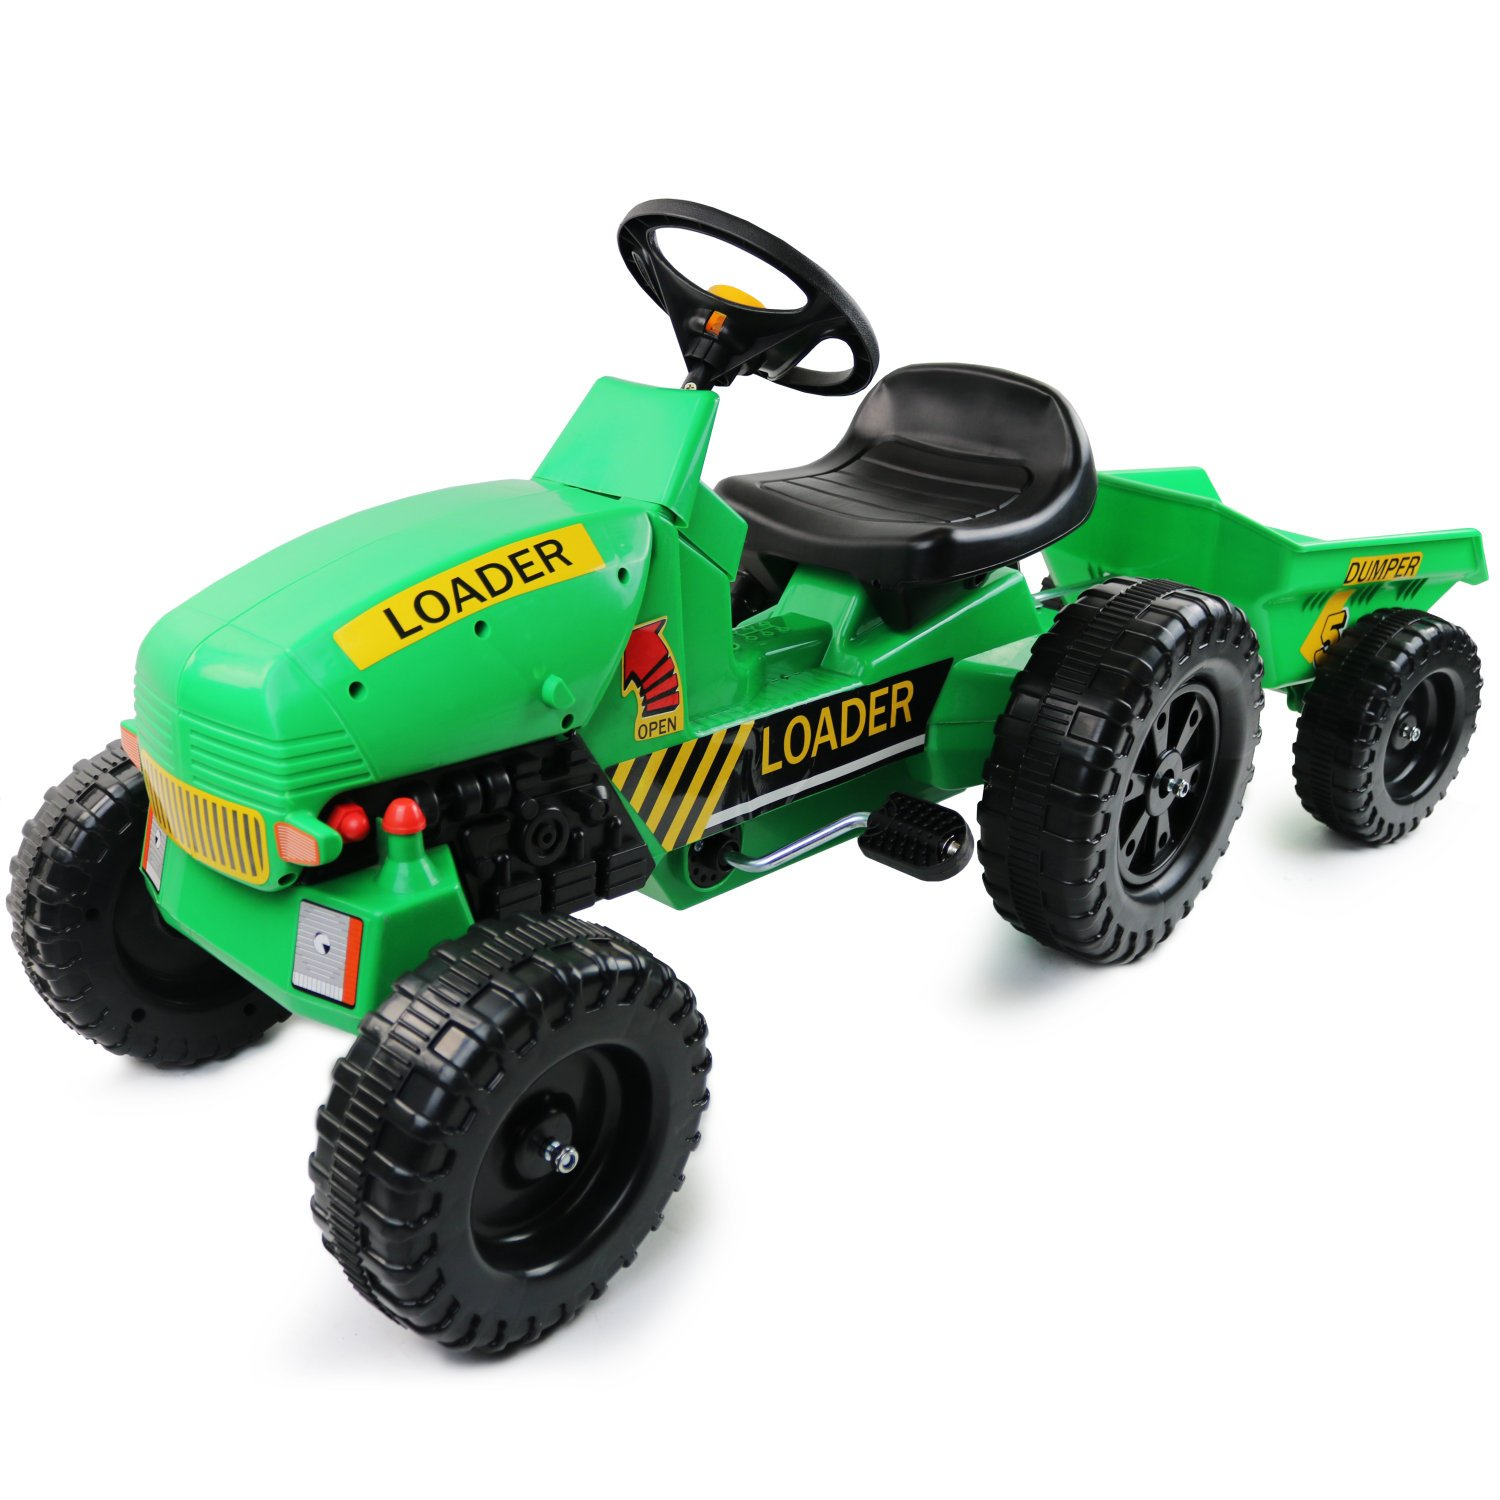 Childrens Pedal Ride on Green Super Tractor With Toy Trailer